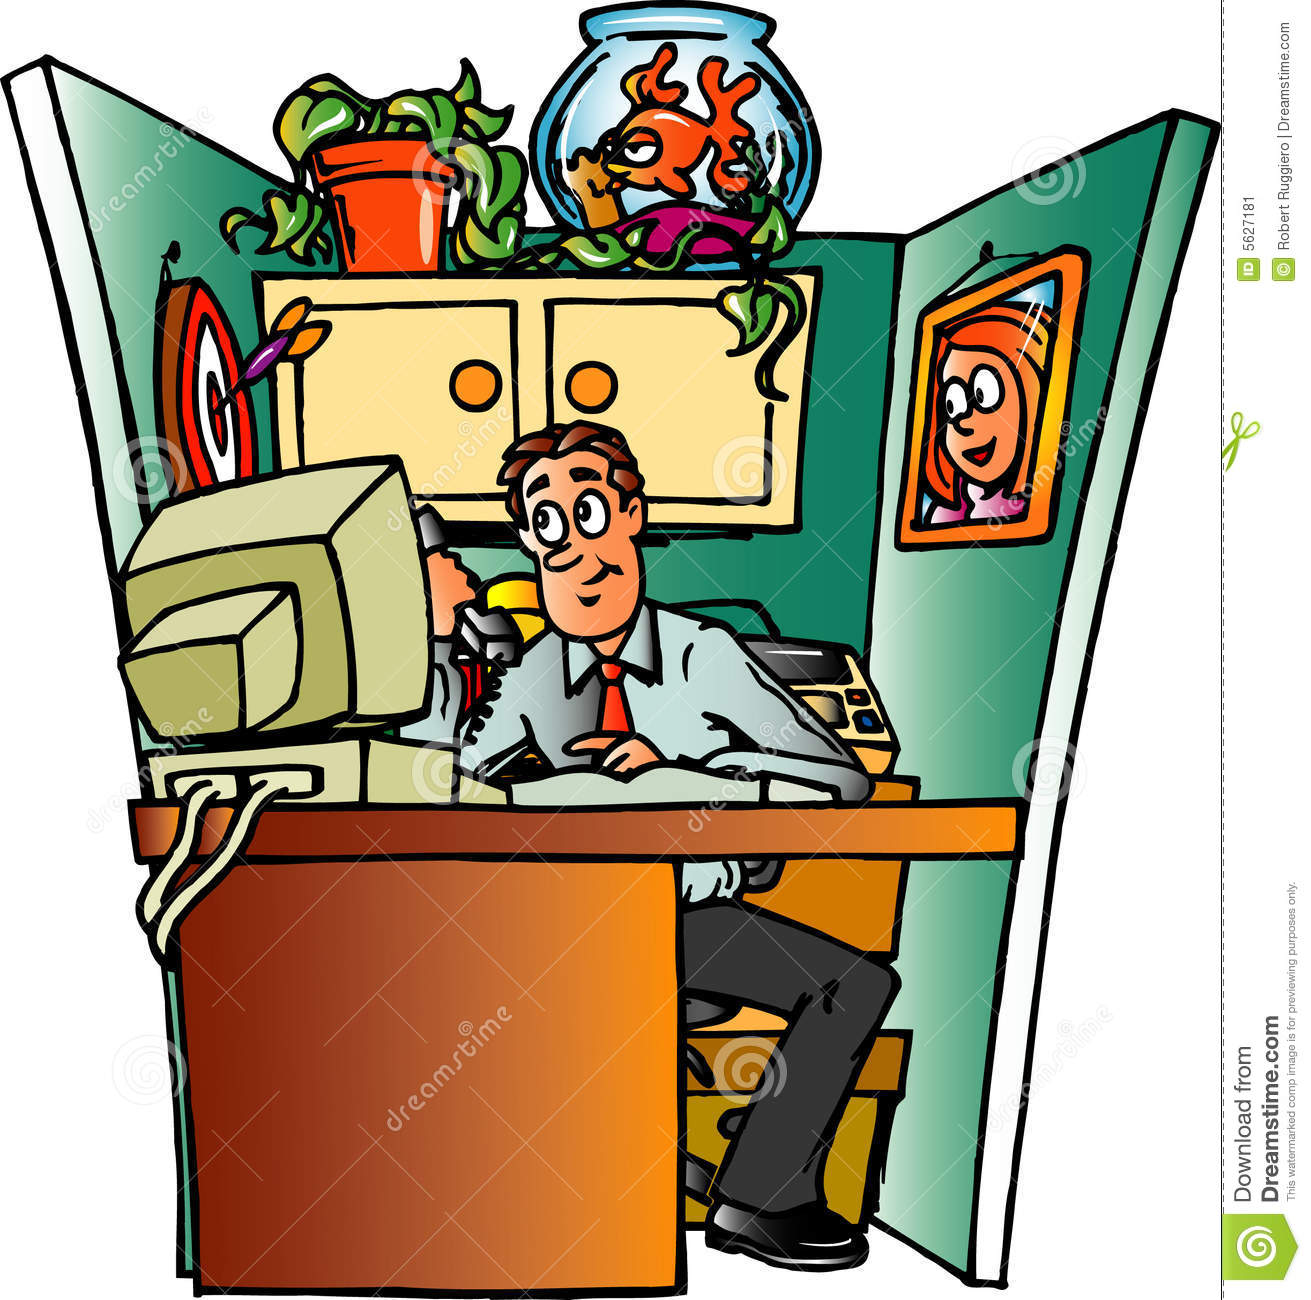 Office Cubical Stock Image - Image: 5627181